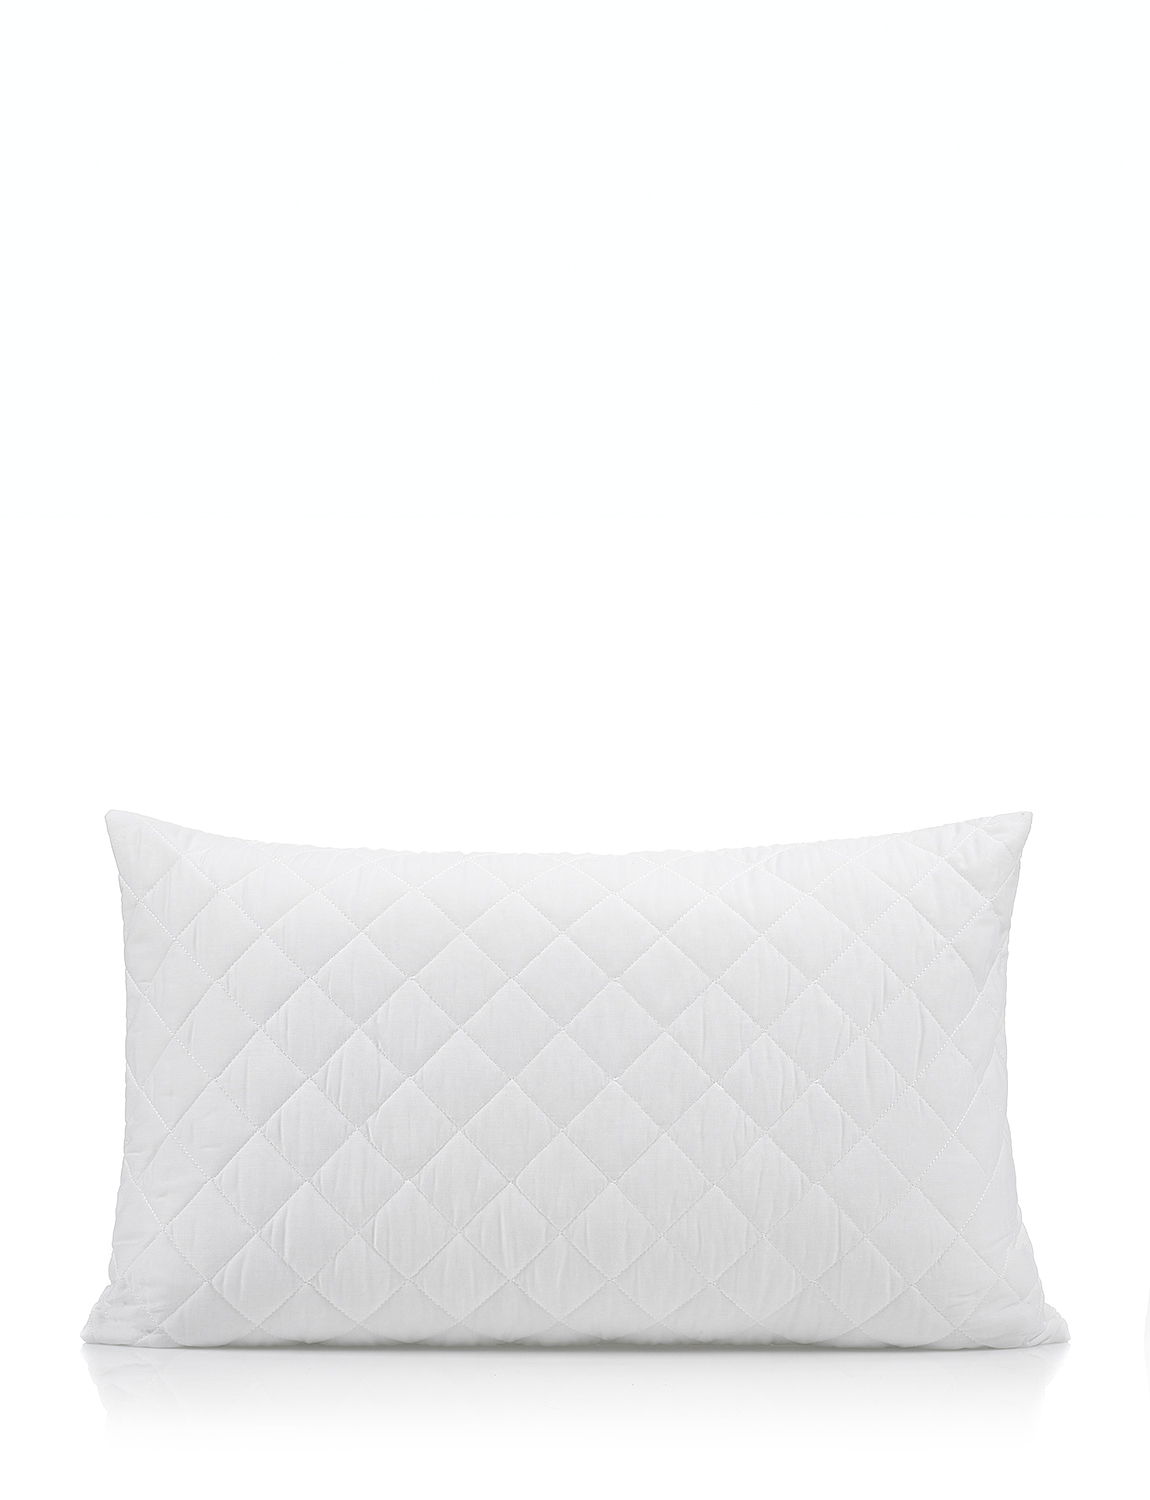 Quilted Pillow Protectors - White